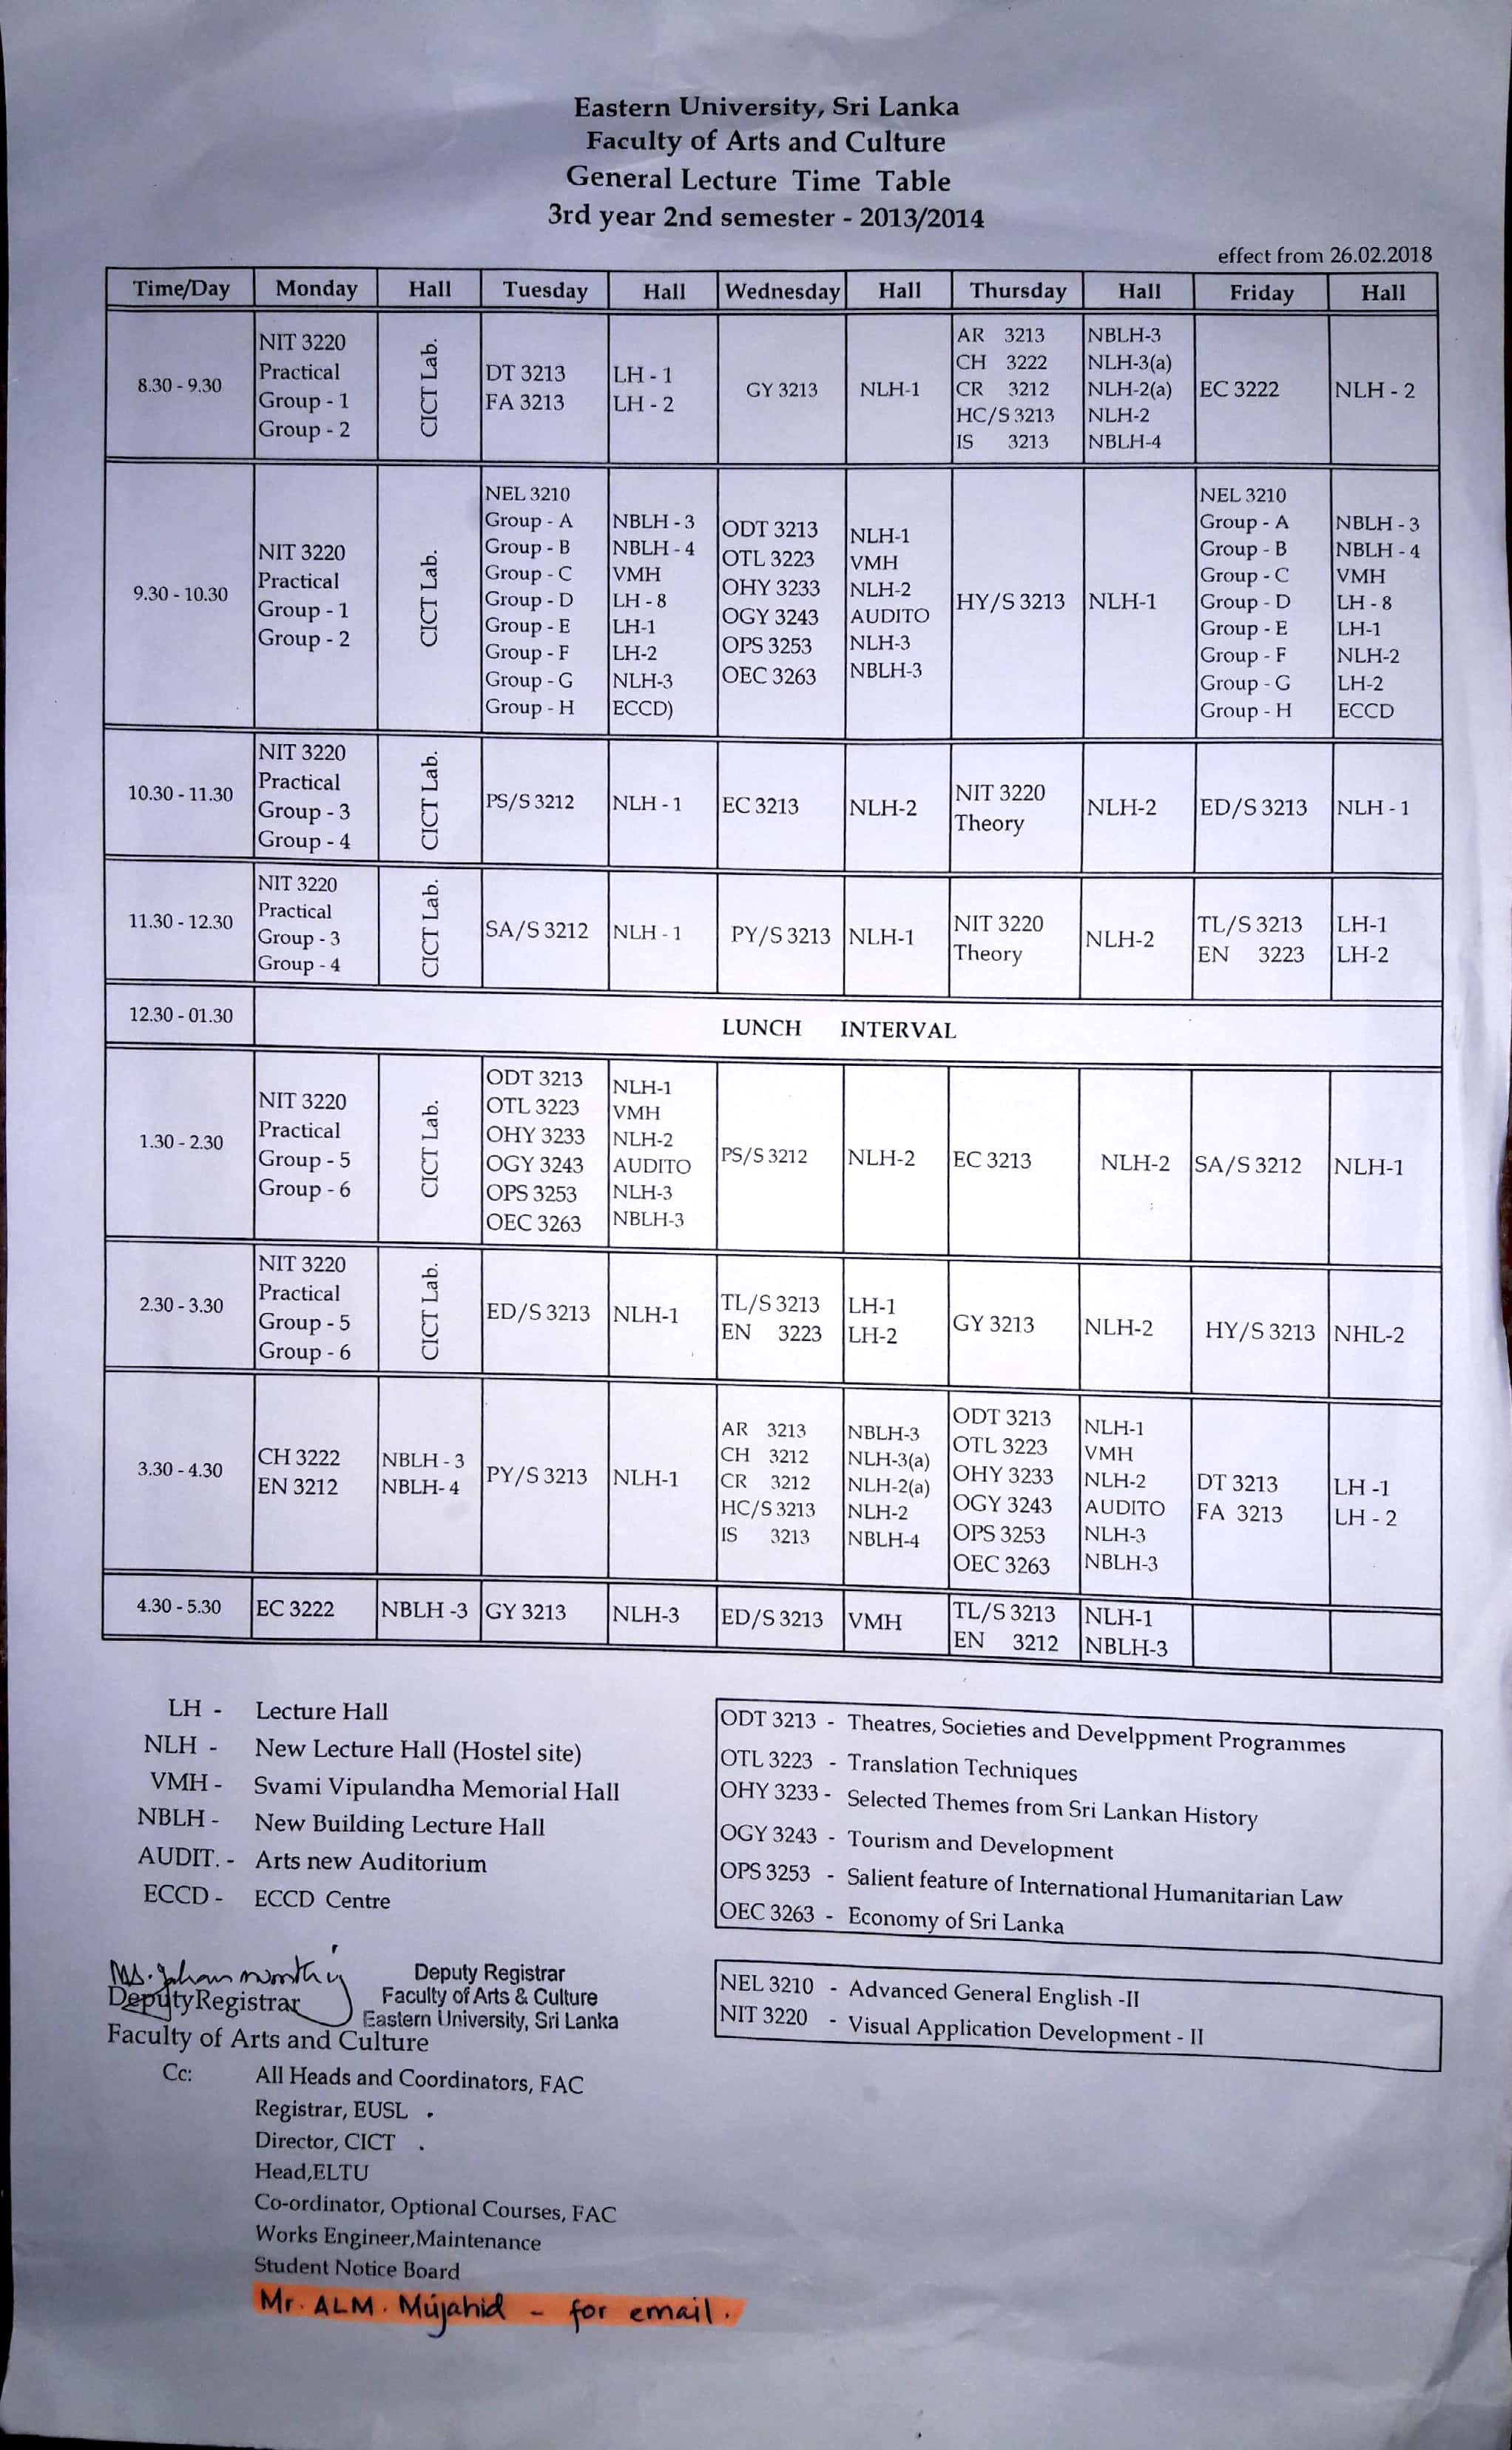 21022018 Time Table 3rd Year 2nd Semester